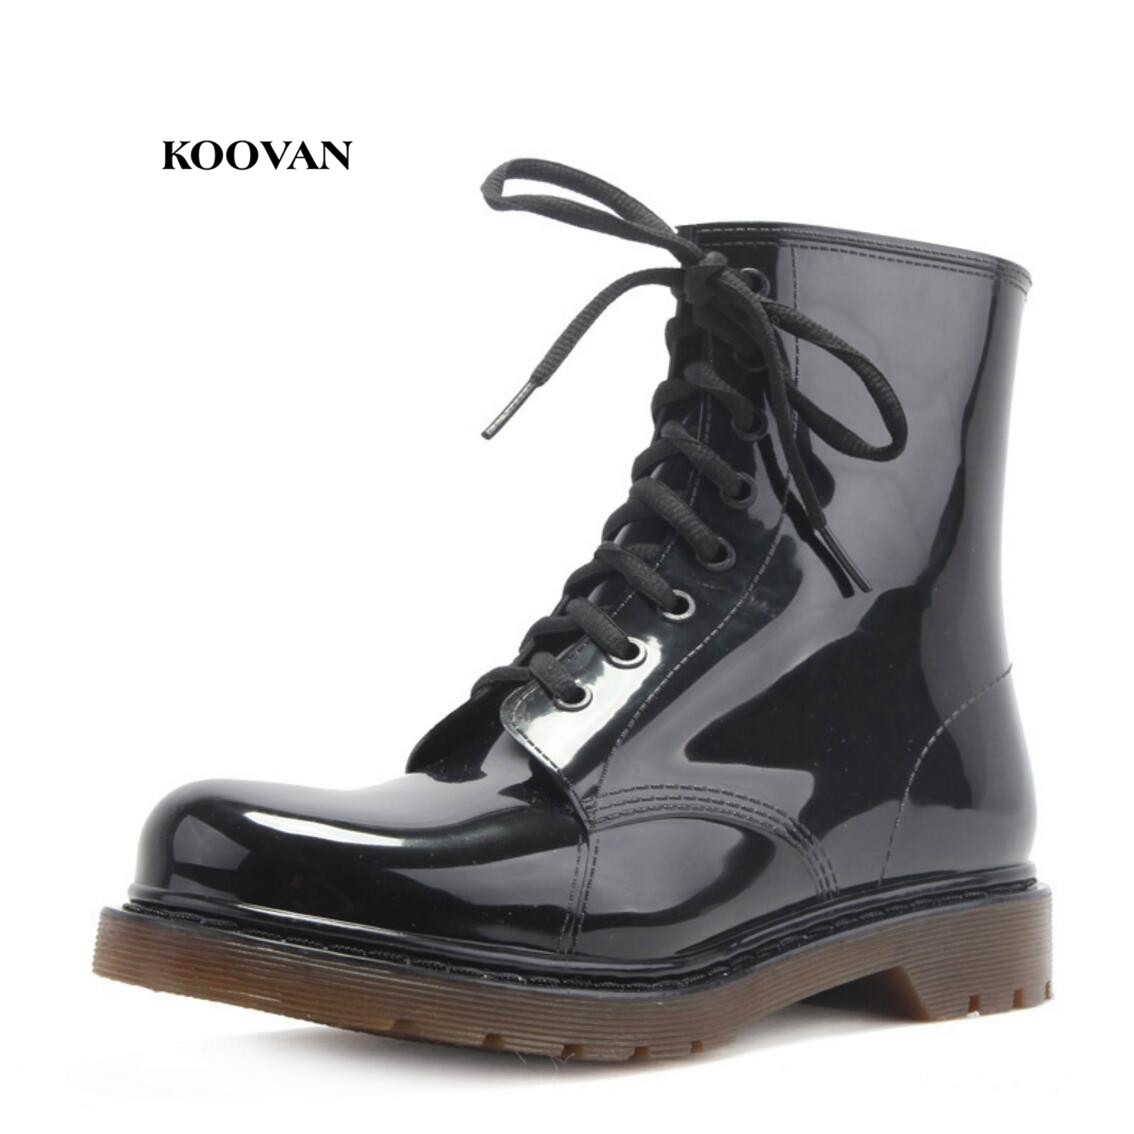 Koovan Man Rain Boots 2018 New Fashion Men Shoes Rainboots Men Black Leather Boots Rain Shoes Large Size 39-45